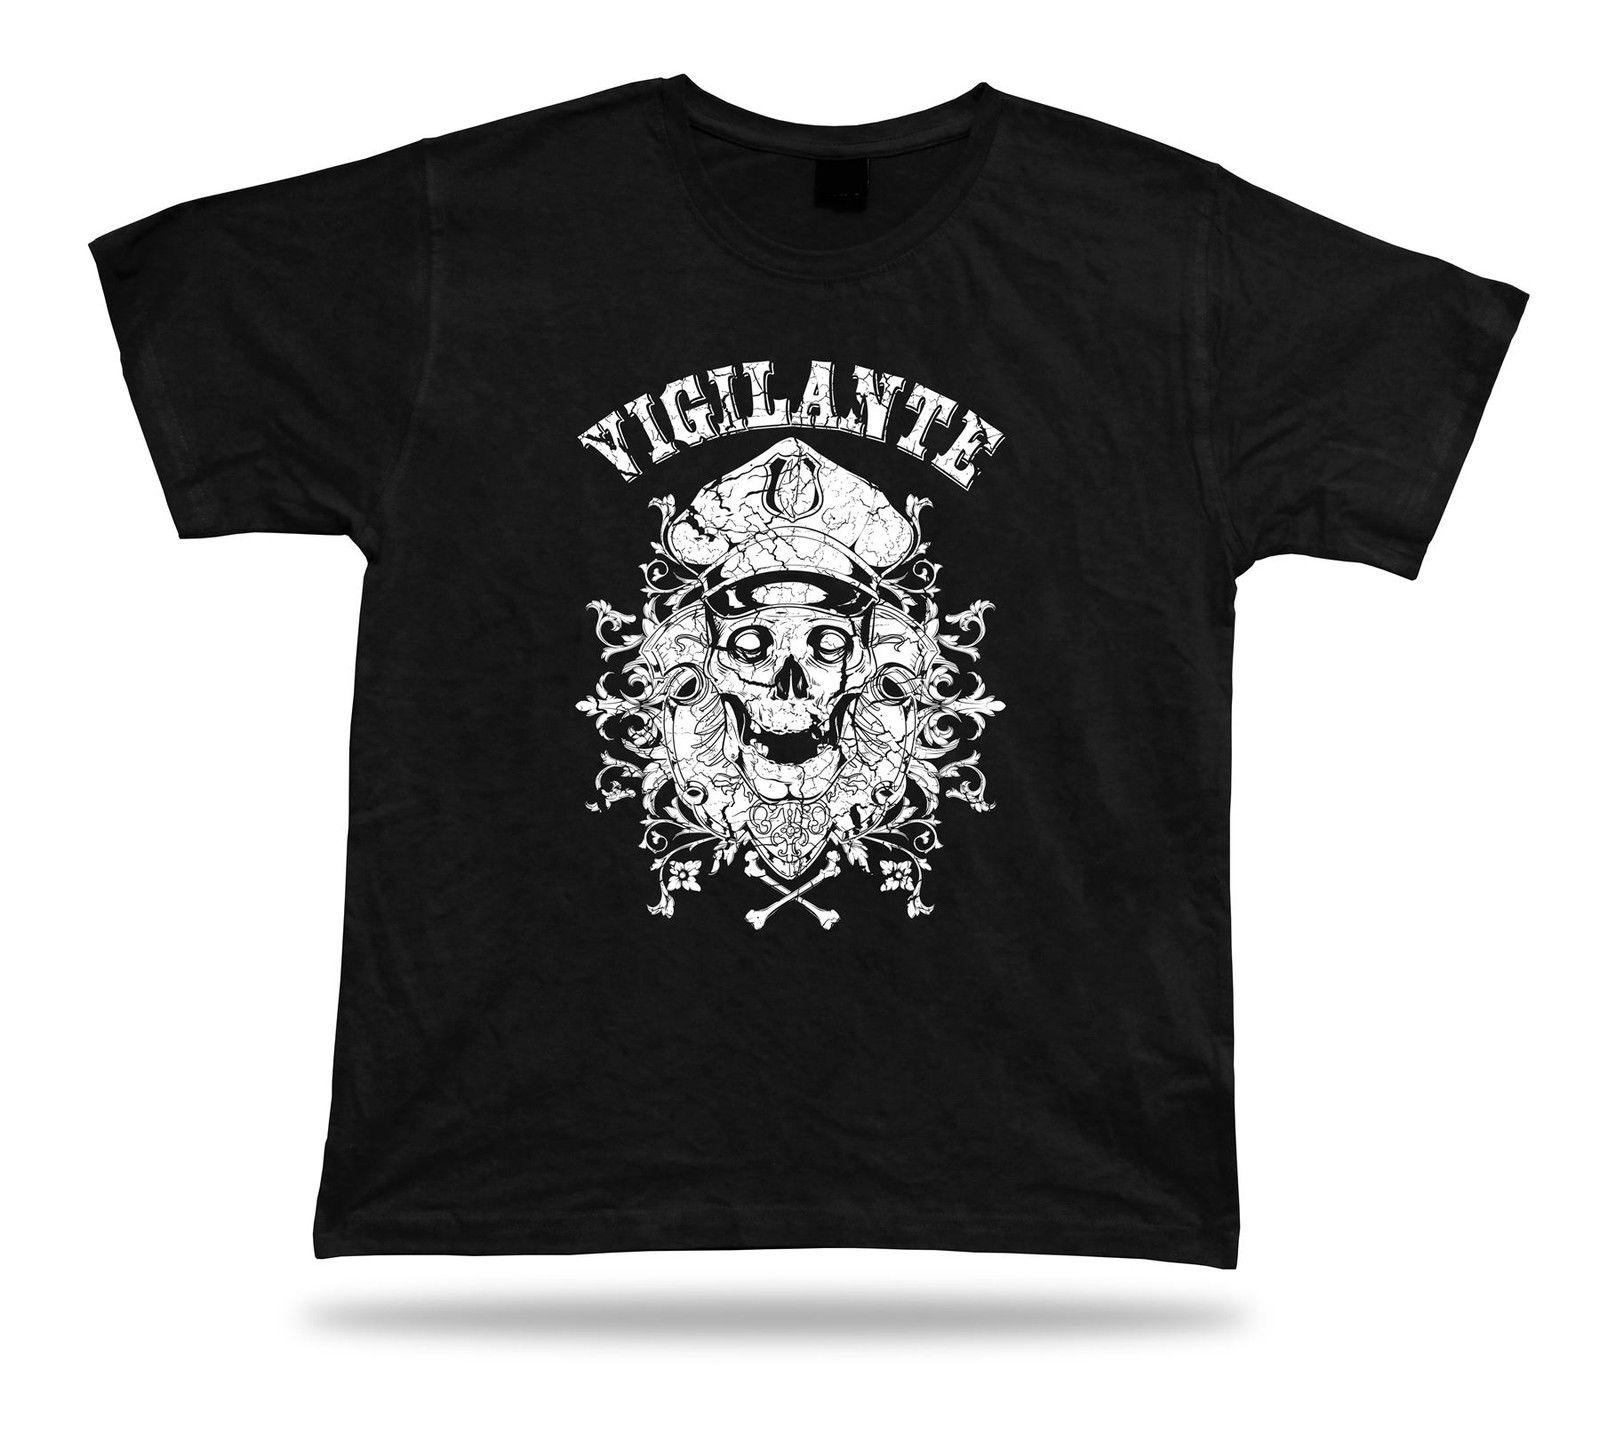 Tshirt Tee Shirt Birthday Gift Idea Vigilante Justice Emblam Skull Death Cop Funny T Designs Make A From Cooltees 1117